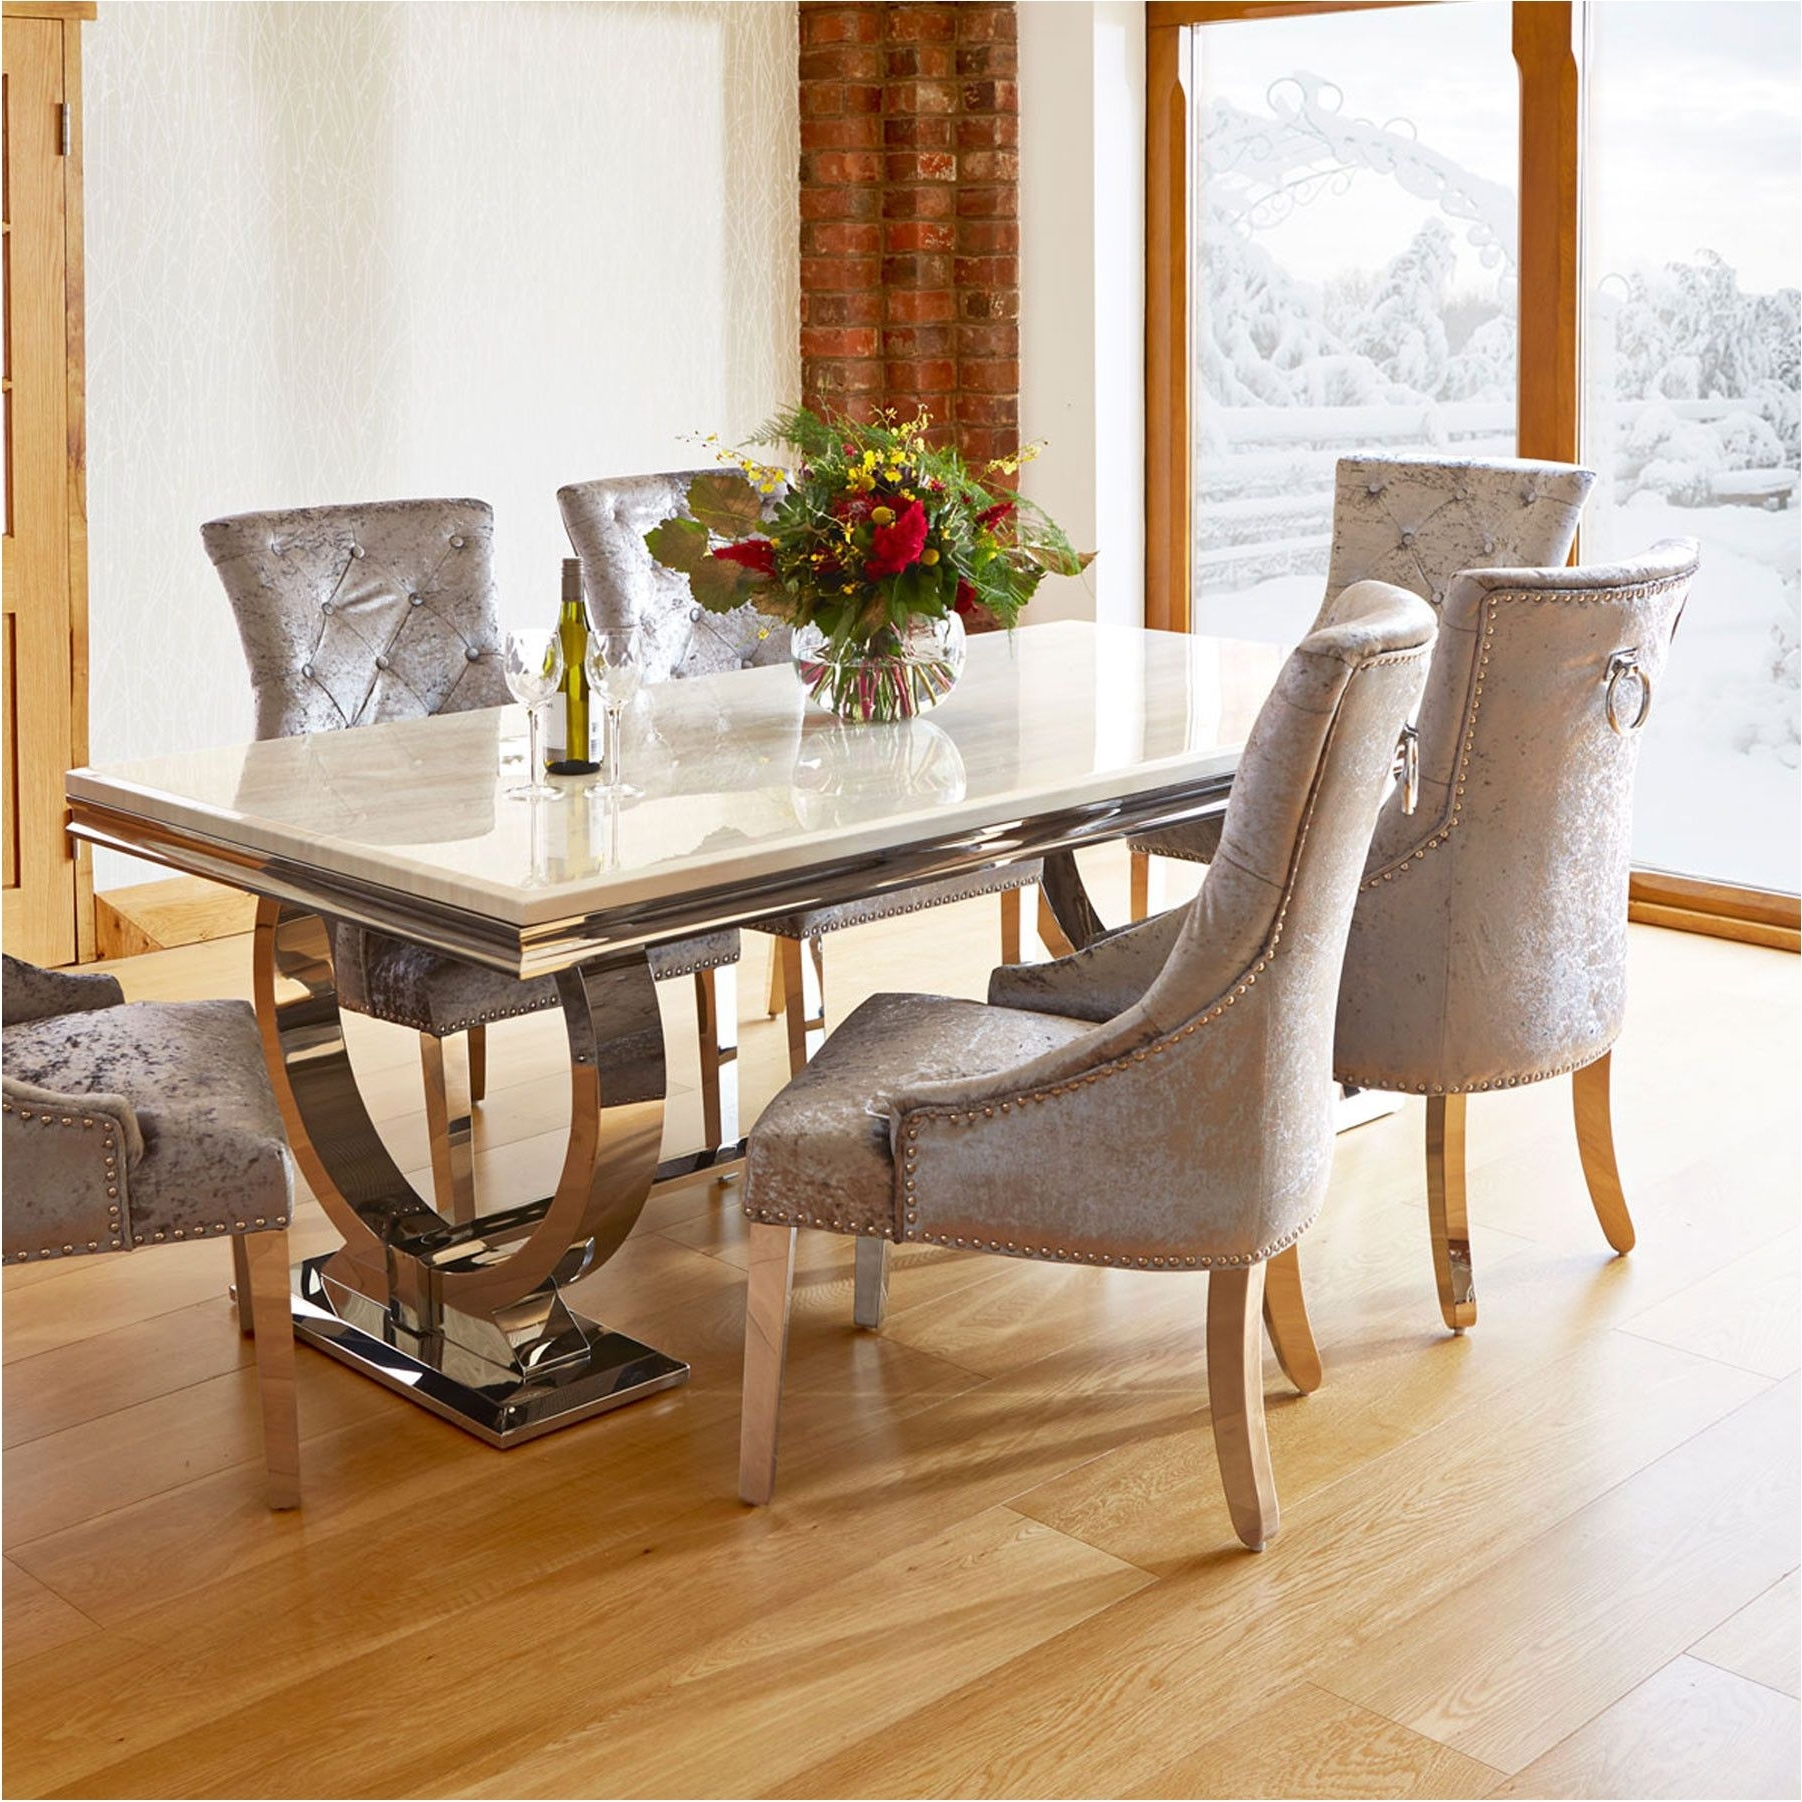 Most Current Extending Marble Dining Tables Intended For Extraordinary Jenson Extending Dining Table Dark Stain Oak Made (View 15 of 25)